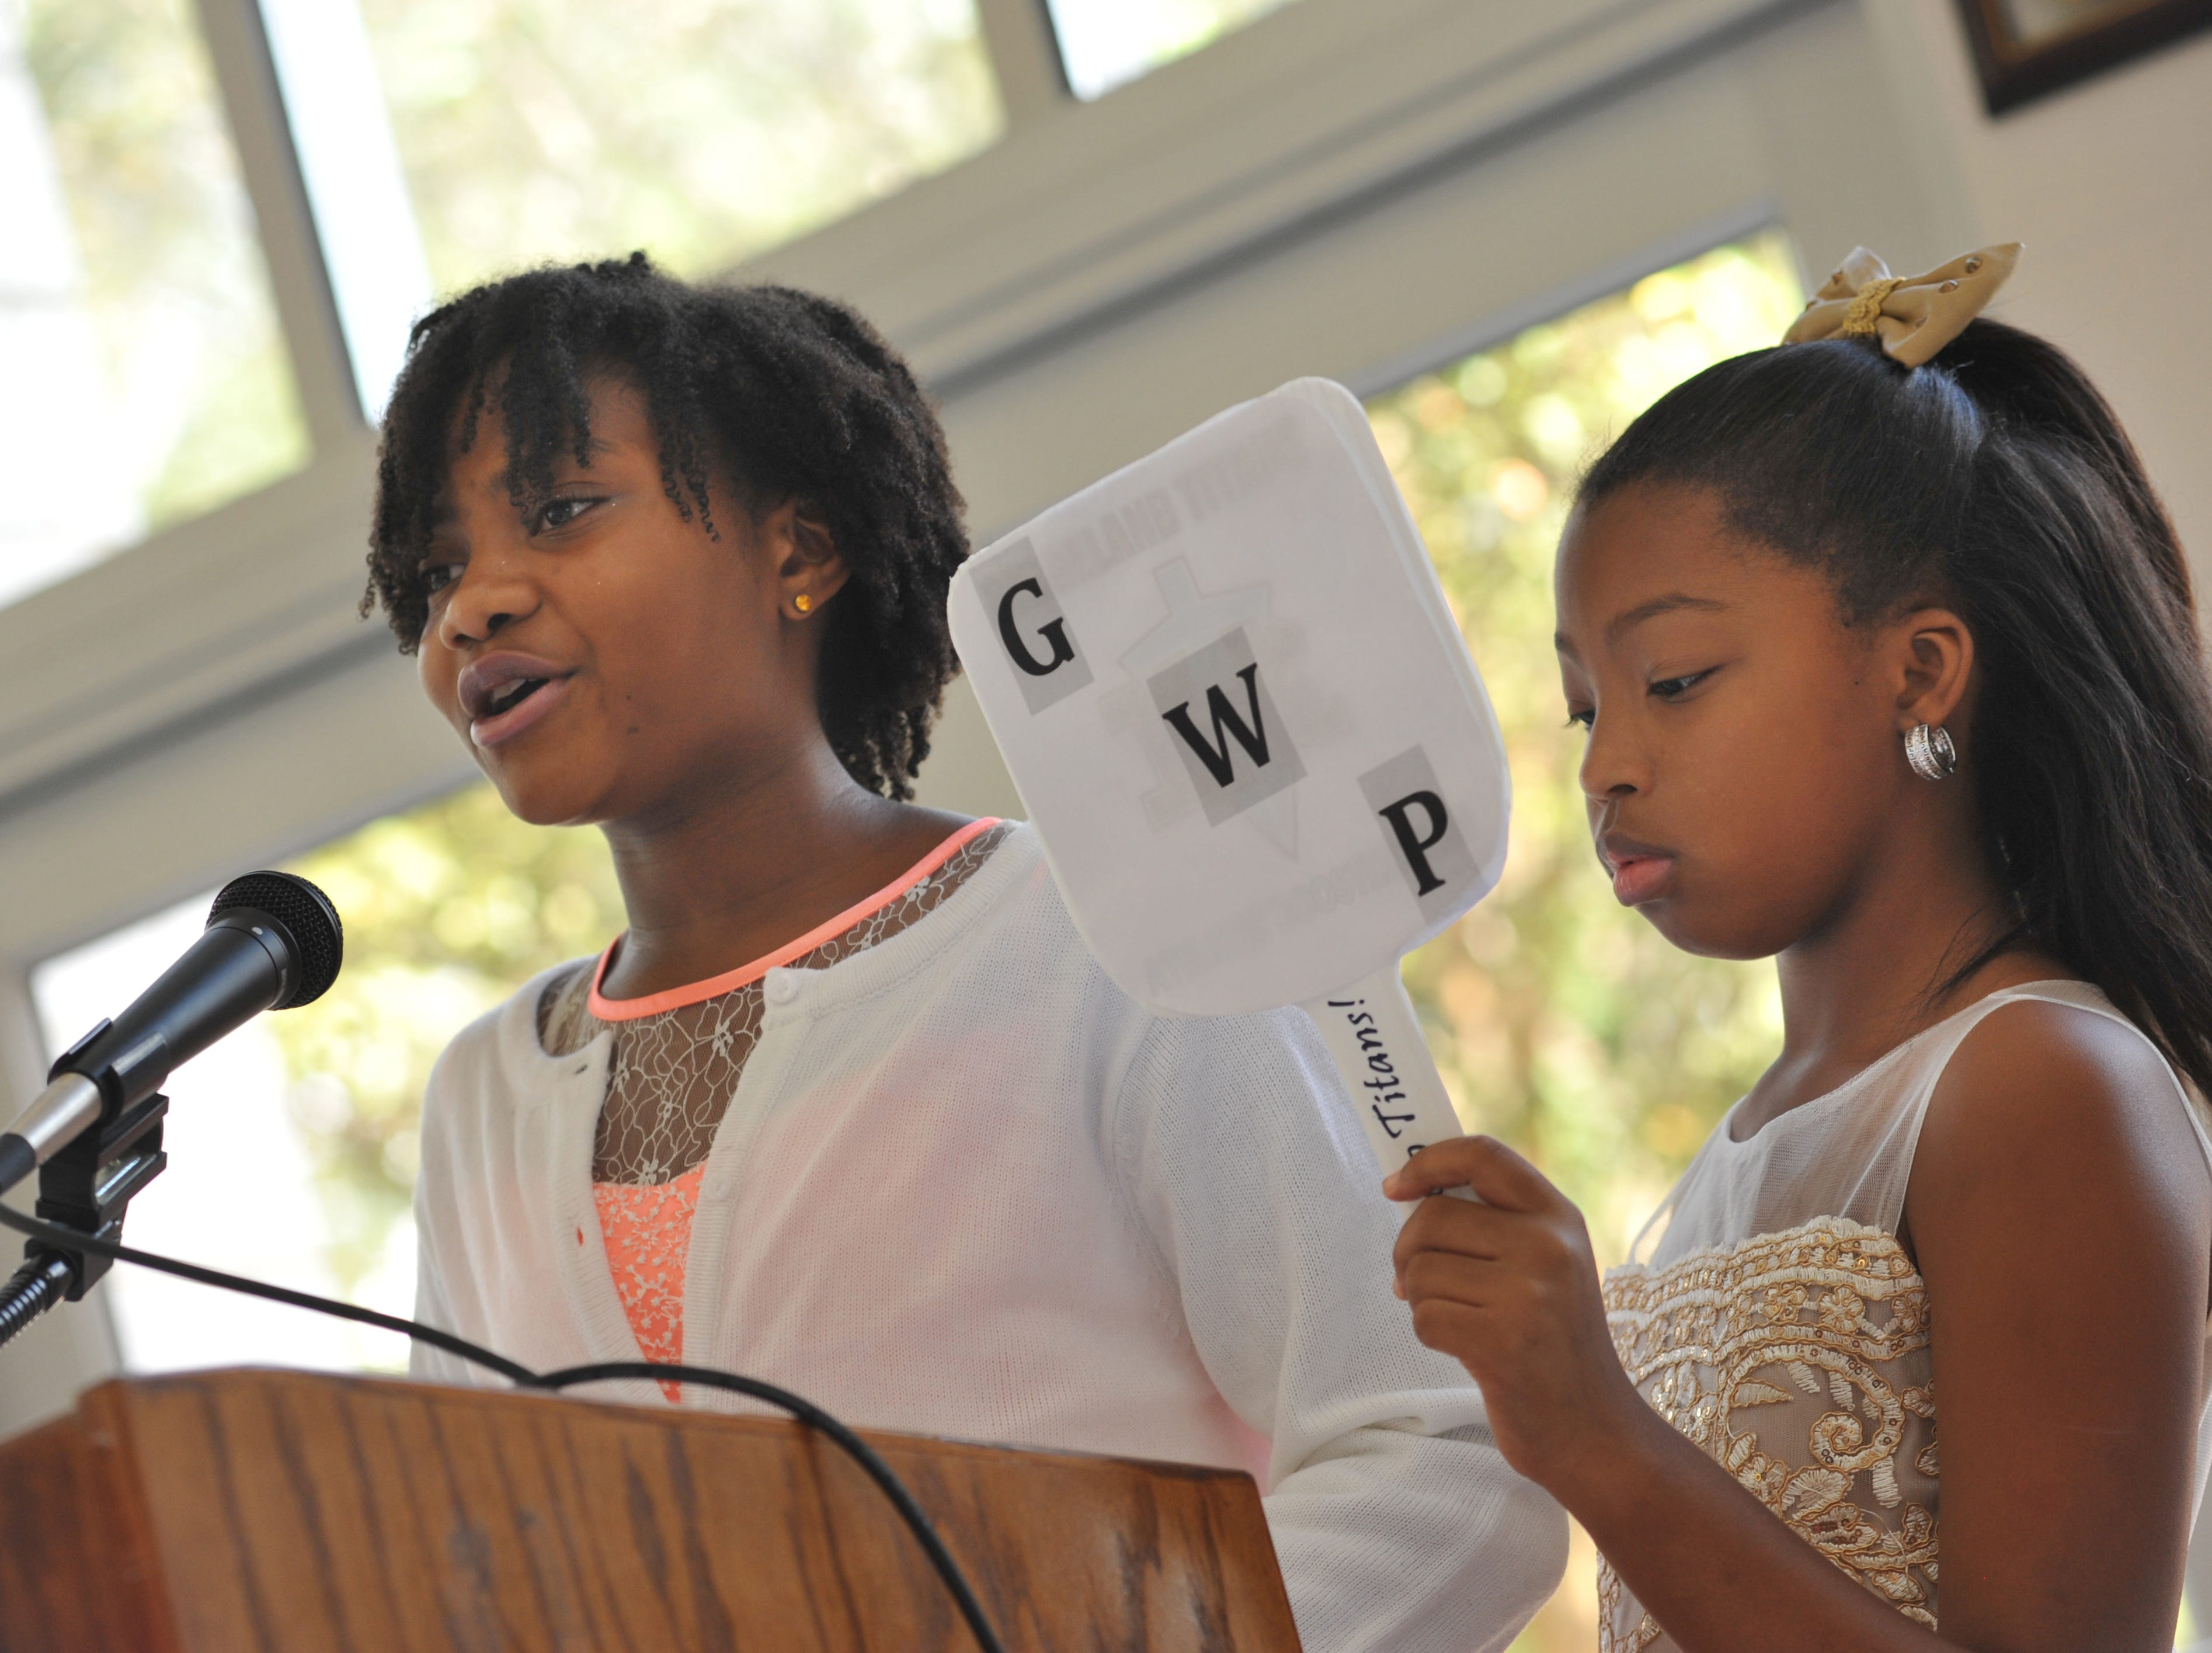 Jaya Thompson, 10, left, addresses the crowd, with fellow Highland Elementary 5th grader Brooklyn Barnes, 10, at her side during the first Girls with Purpose Club Mother-Daughter Tea on Friday, Sept. 21, 2018. With the guidance of a staff club sponsor, Girls with Purpose helps elementary-aged young ladies grow emotionally and socially while developing the skills they will need to succeed beyond the classroom.